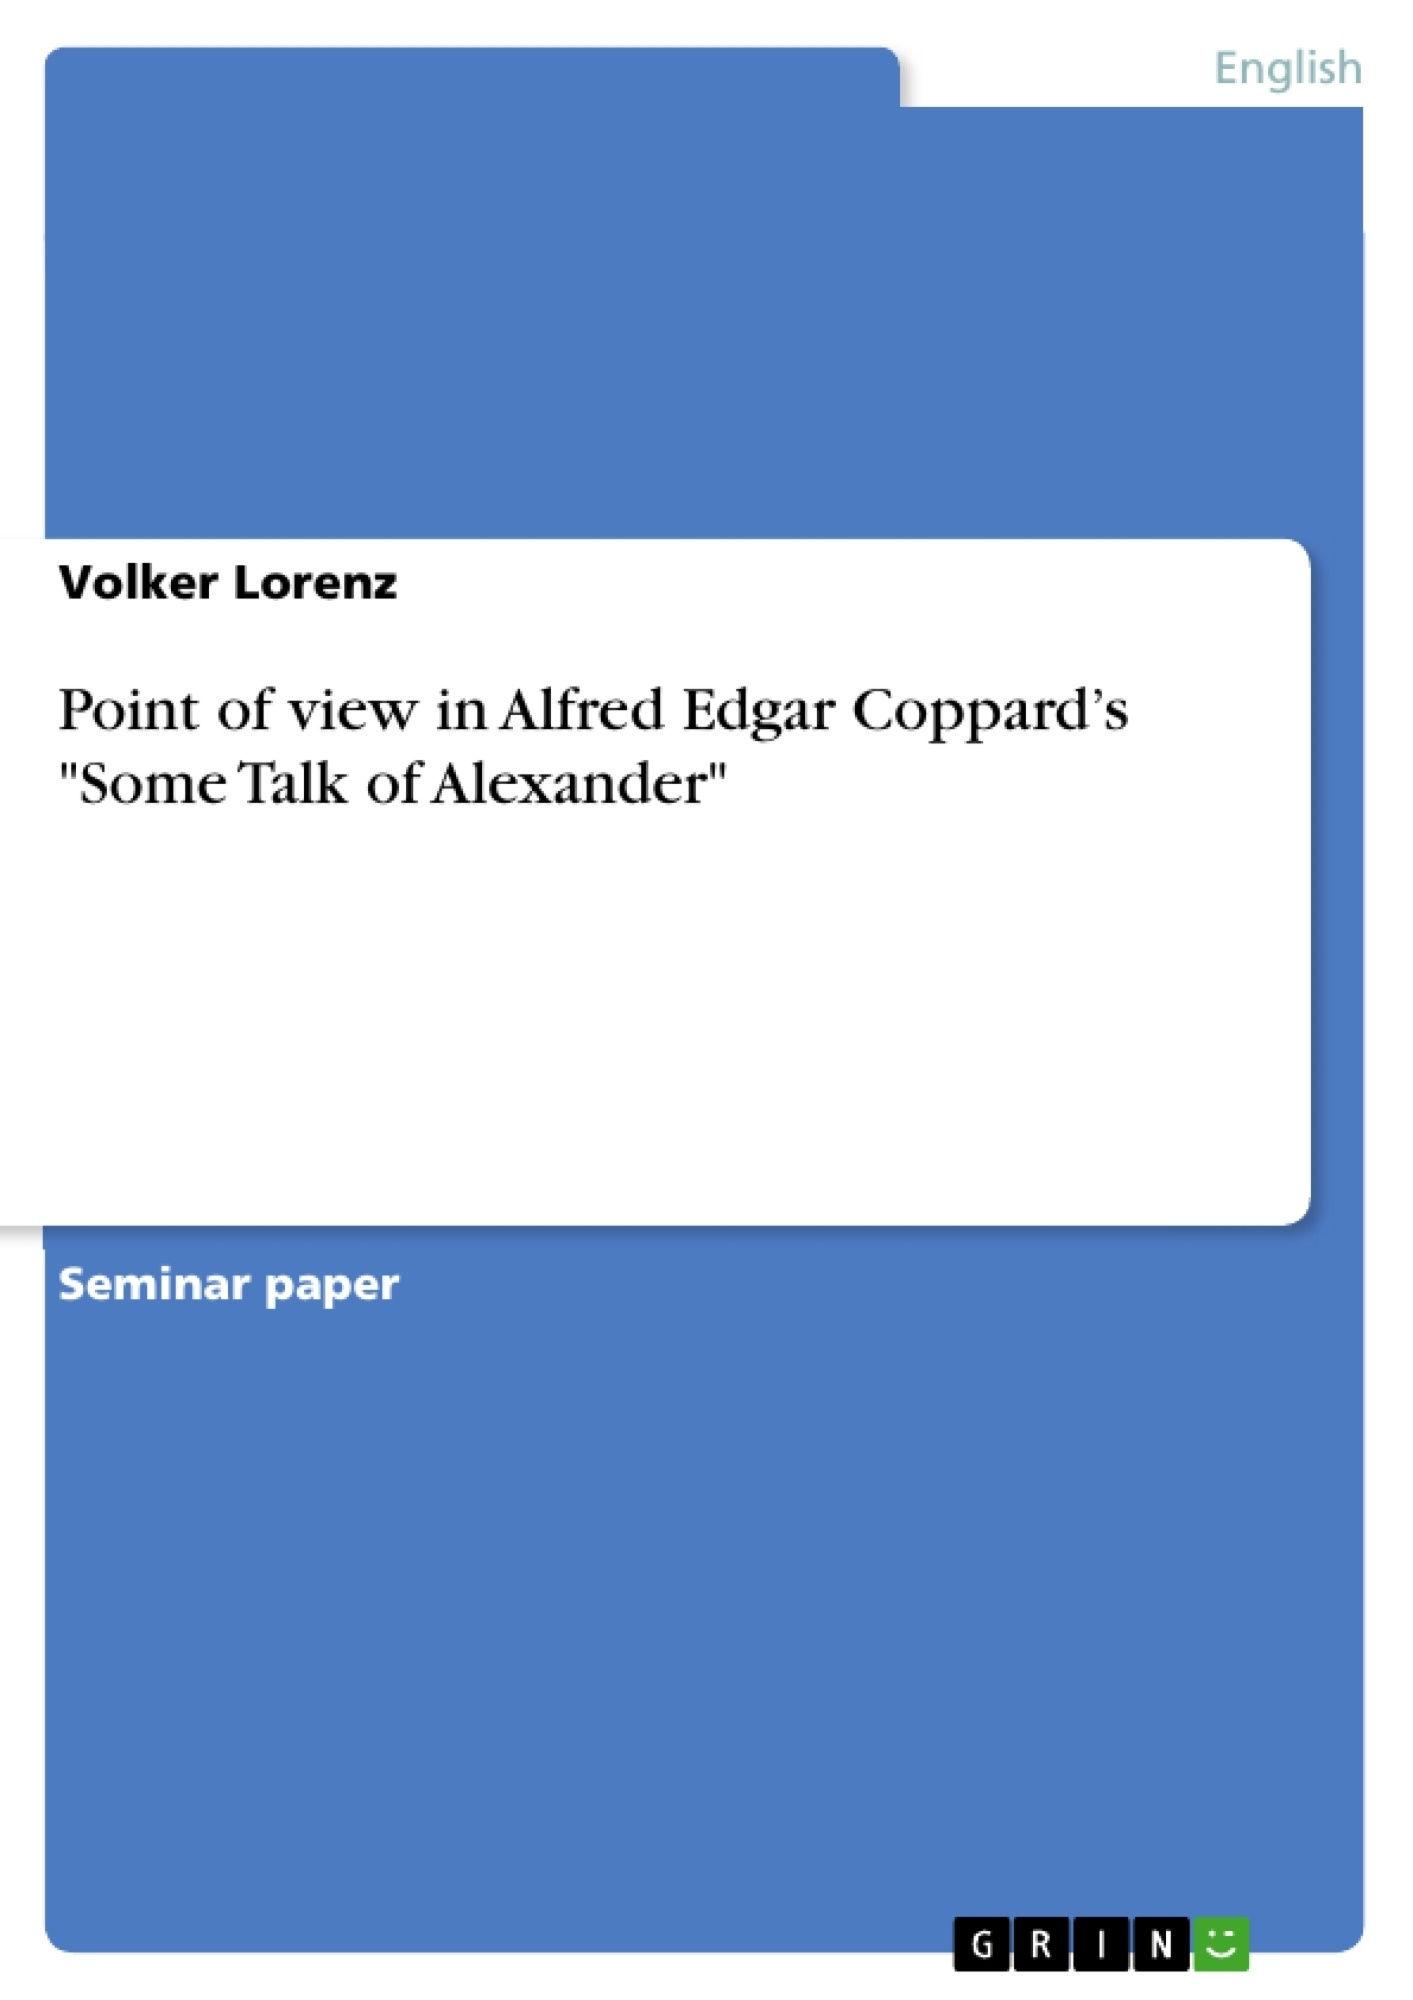 """Title: Point of view in Alfred Edgar Coppard's """"Some Talk of Alexander"""""""